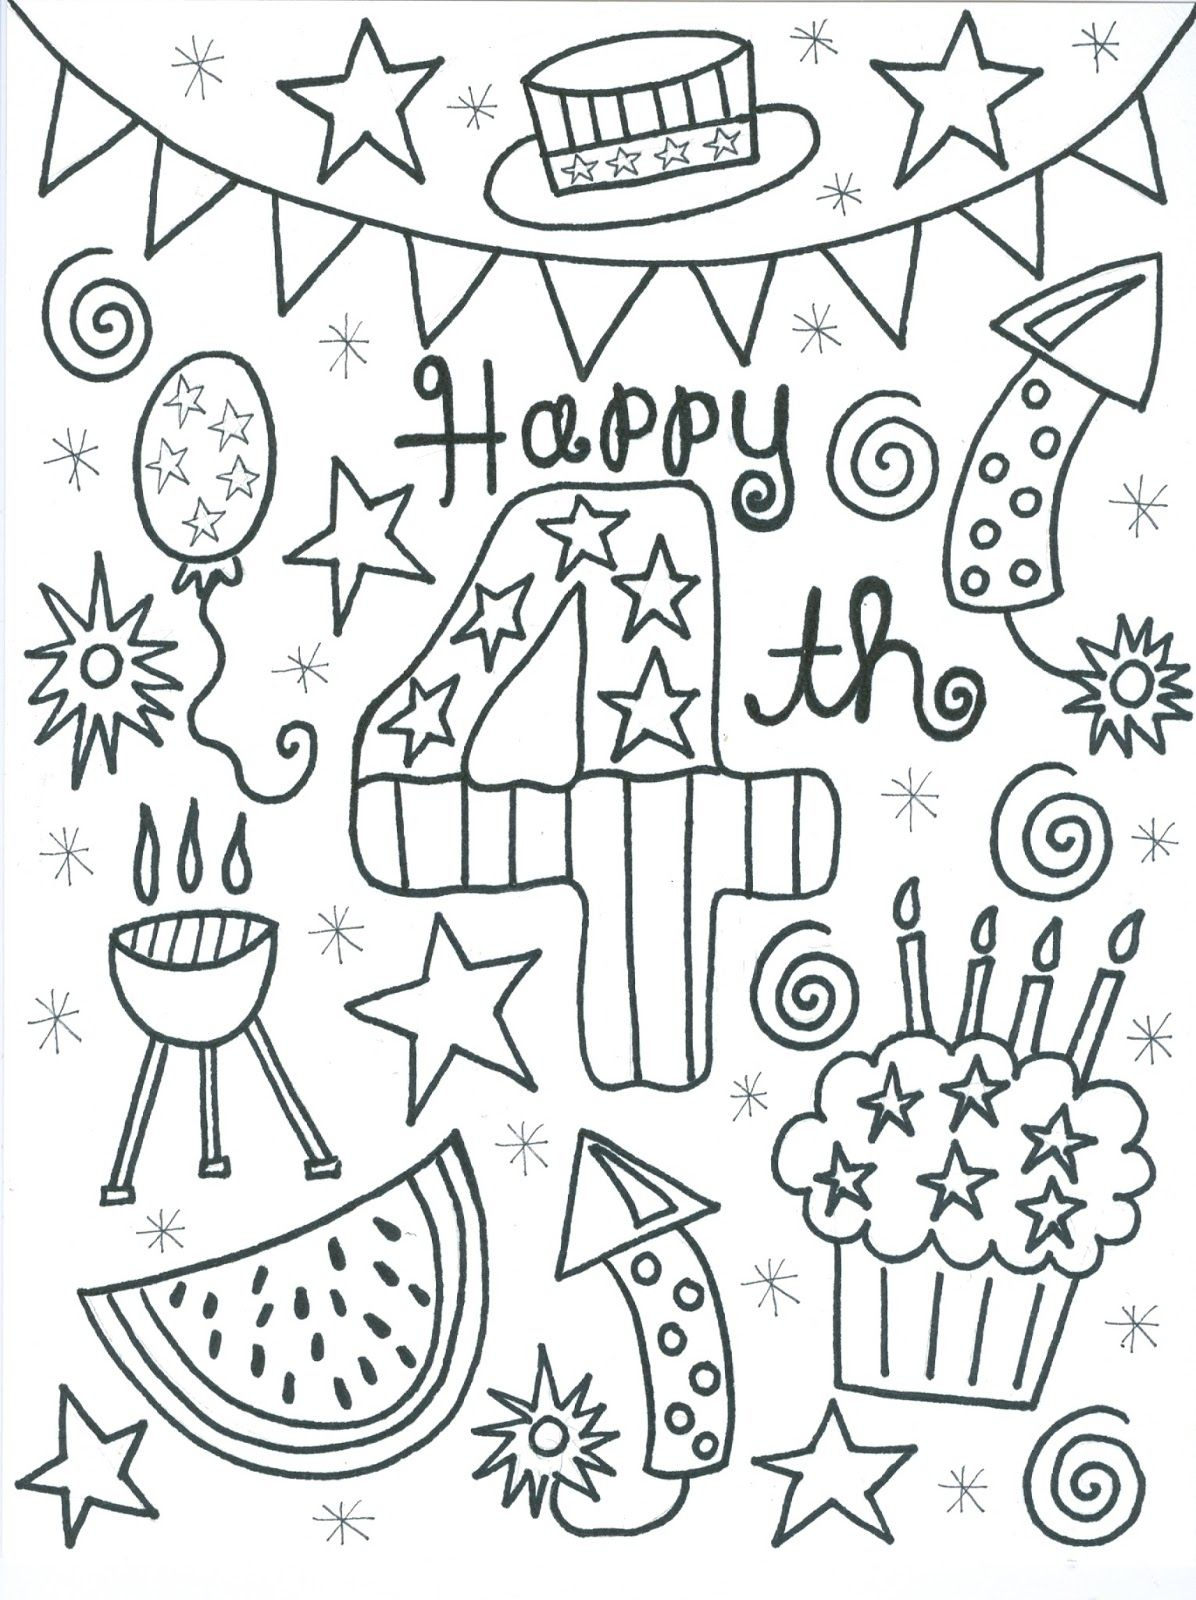 Just in time for a little Fourth of July coloring... Here